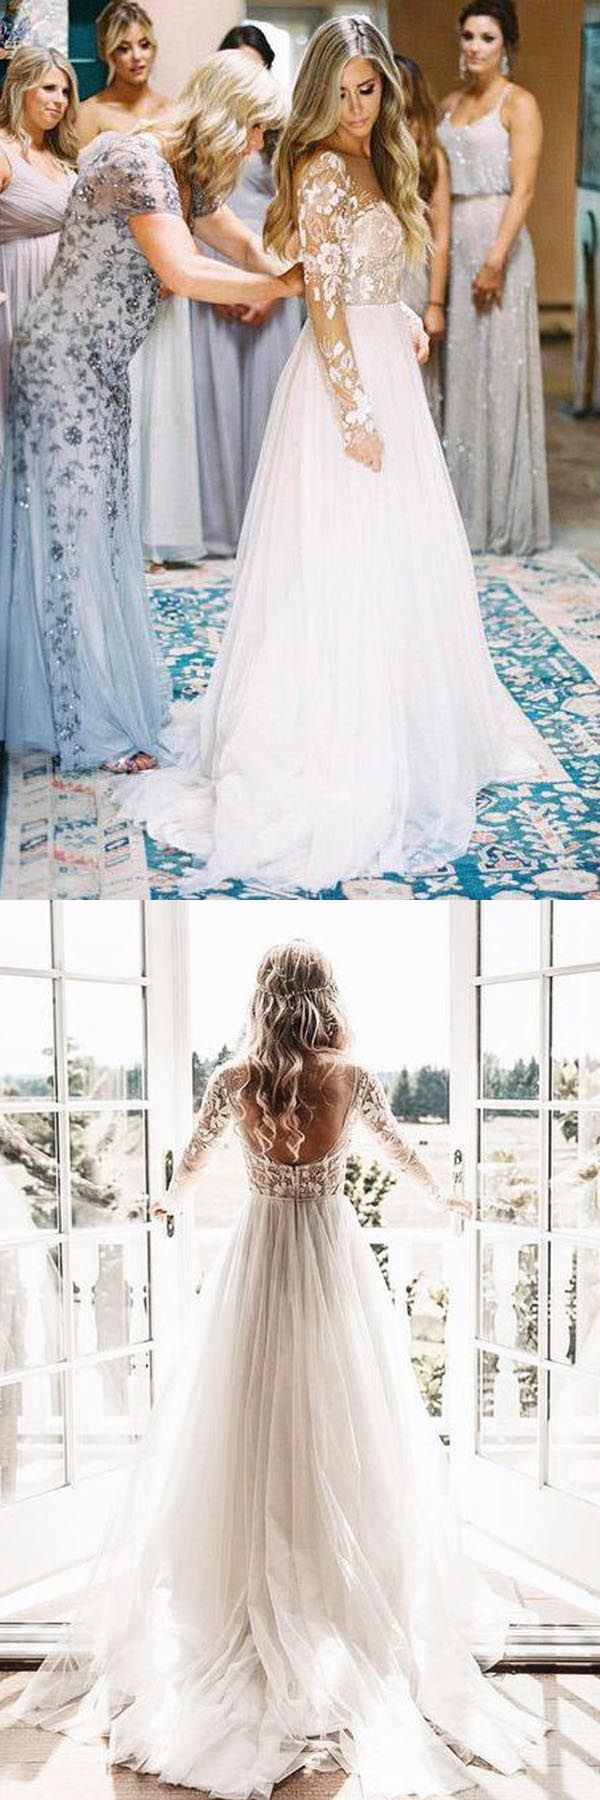 Long sleeve ivory tulle see through backless wedding dresses wd